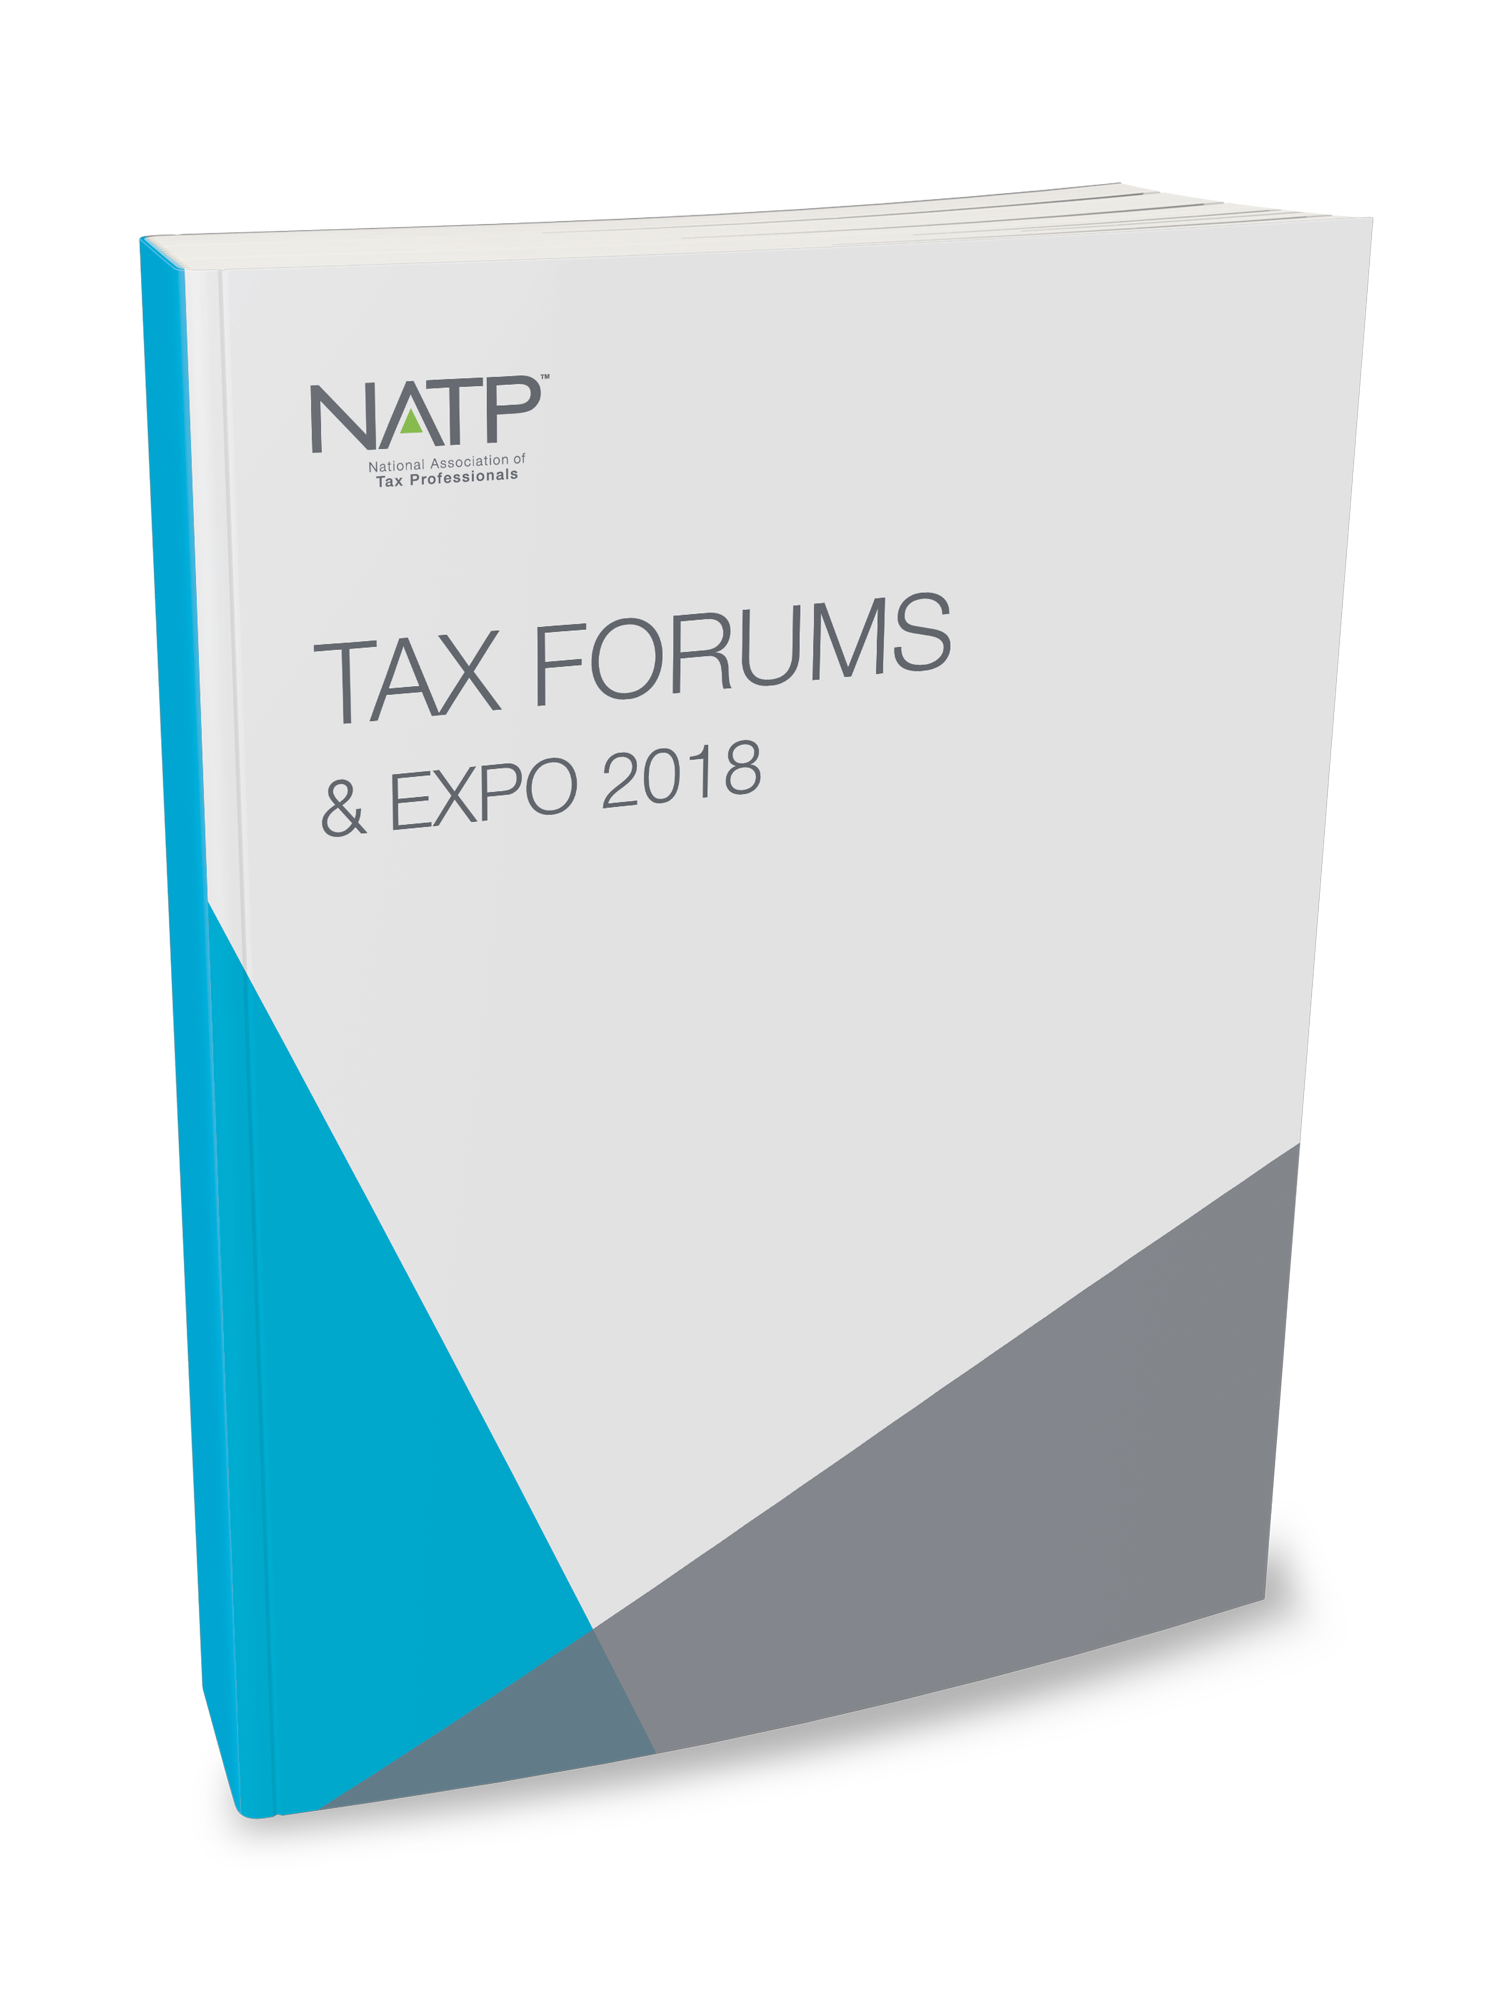 Tax Forums Presentations Slides Textbook (2018) – #TF18BOOK